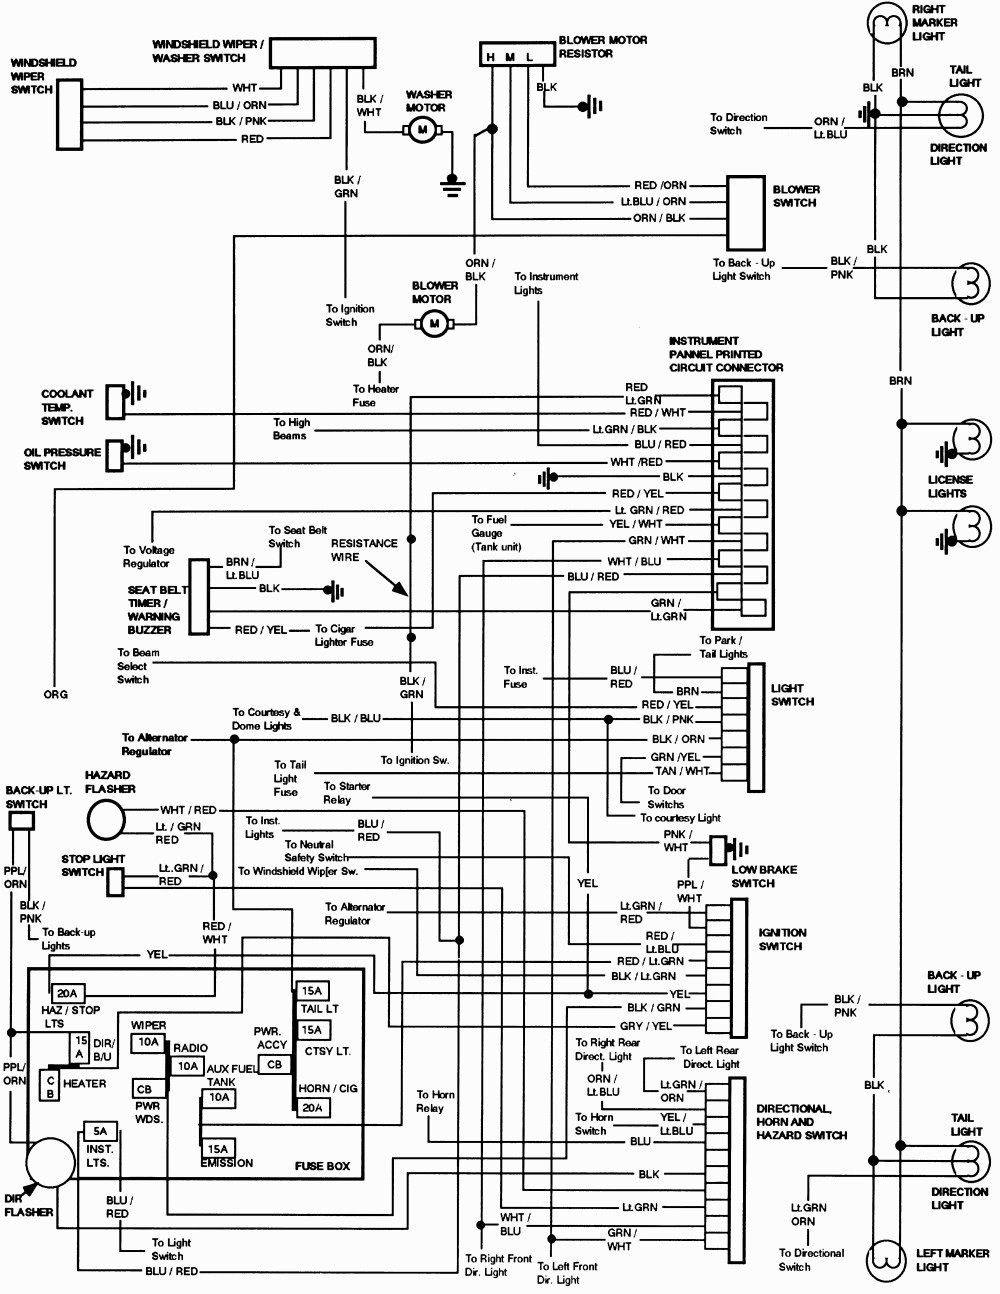 1993 ford tempo stereo wiring diagram